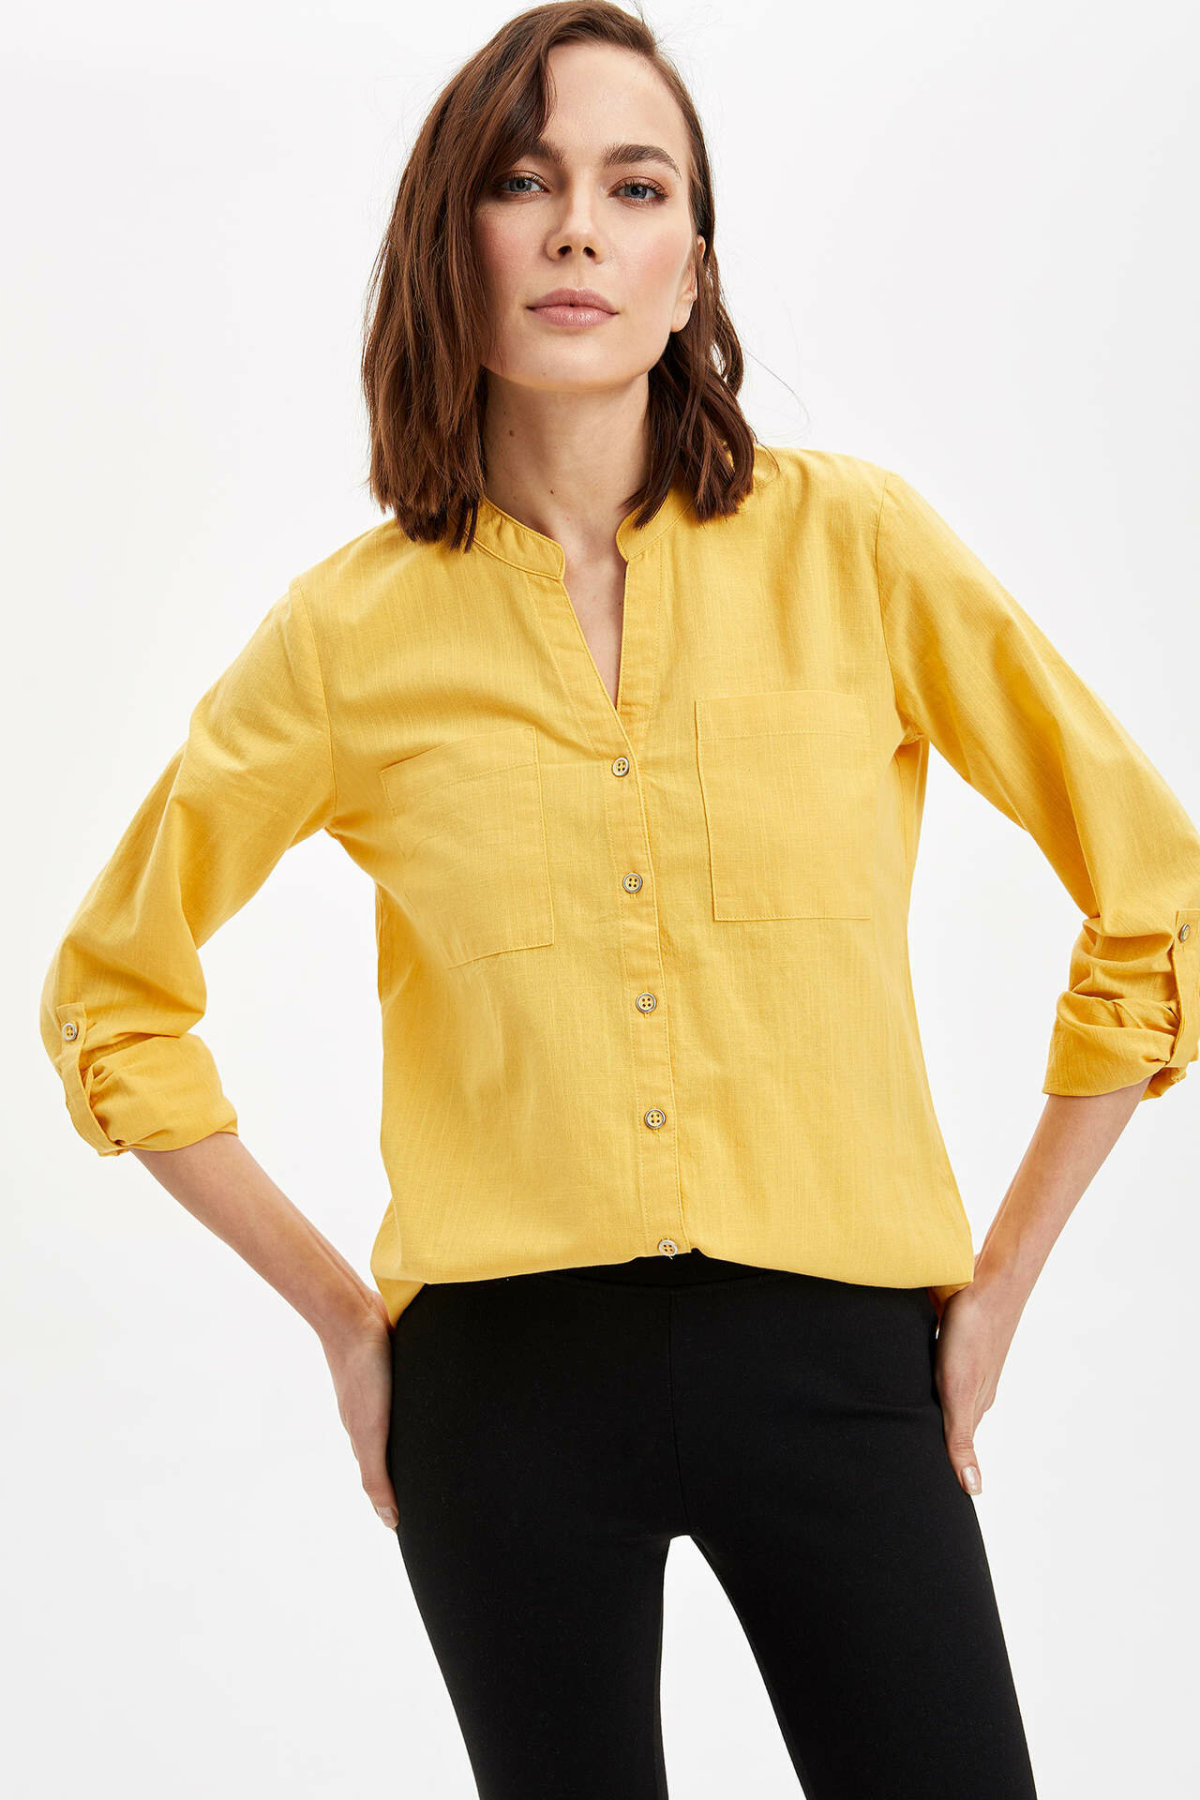 DeFacto Woman Spring Bright Yellow Top Shirts Women V-neck Shirts Female Pocket Long Sleeve Shirt-L6492AZ20SP